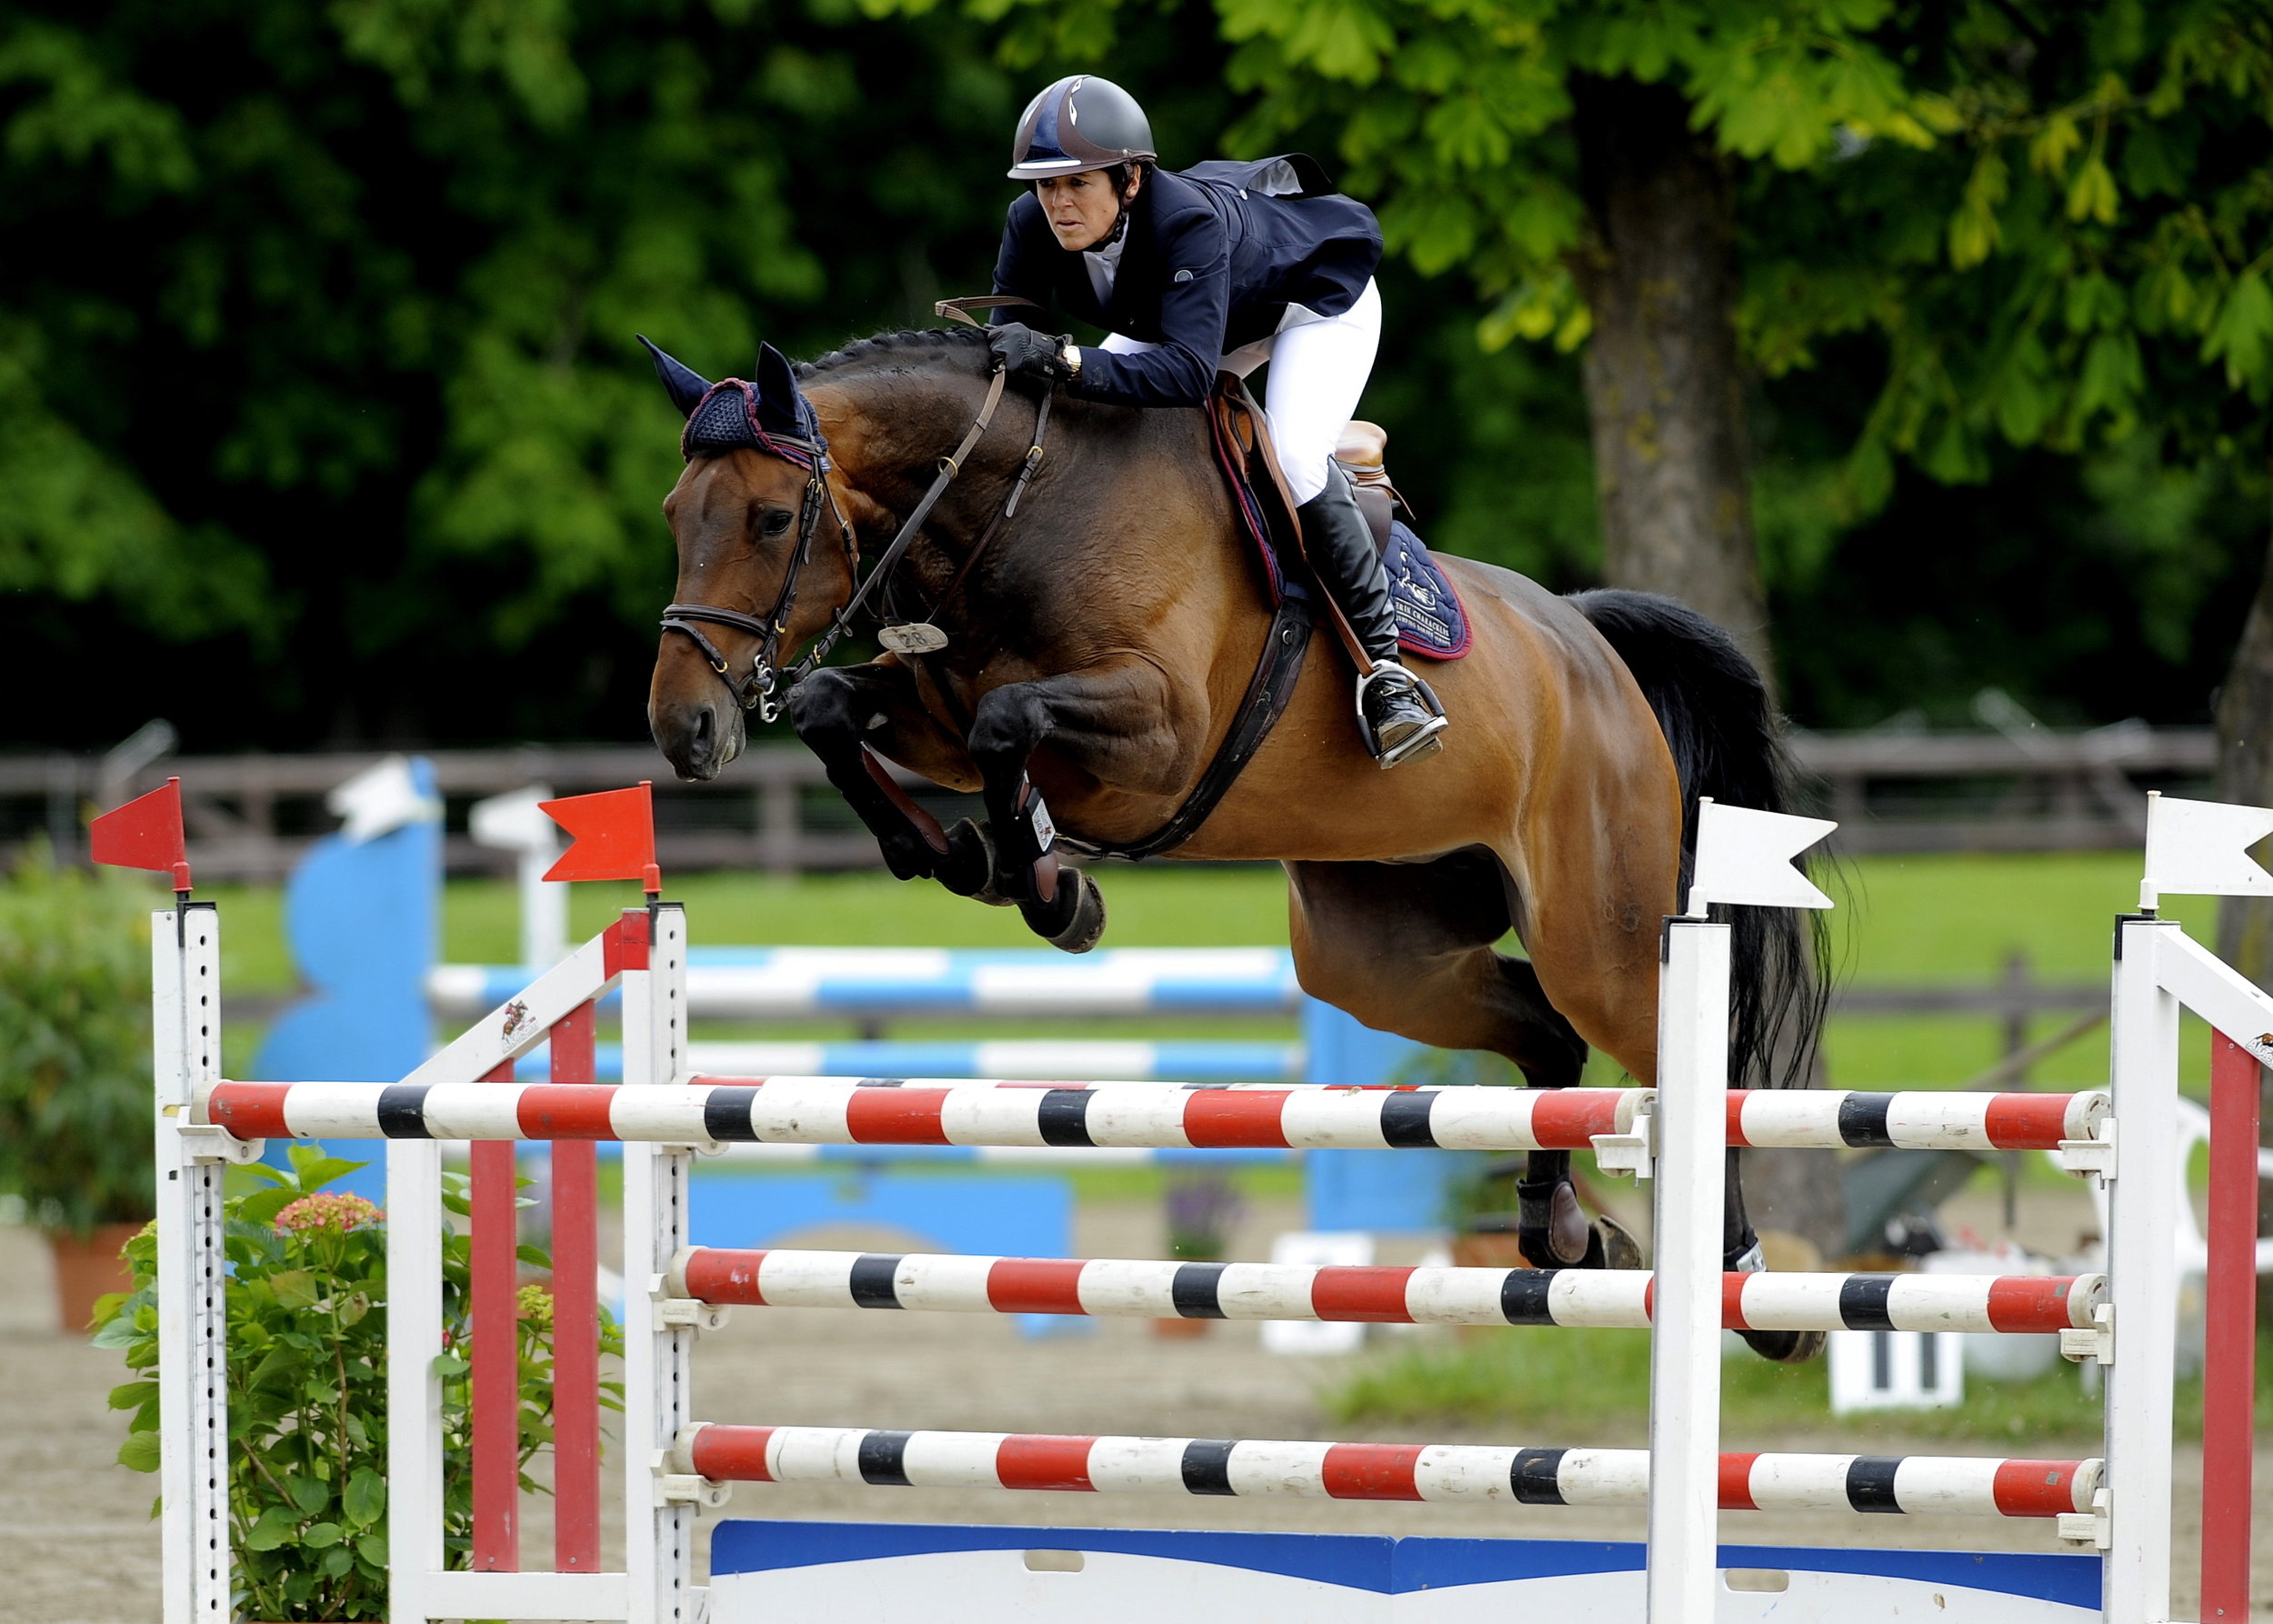 Sinfonie competed successfully in the 2015 European Championships in Aachen with Vladimir Tuganov (Russia)